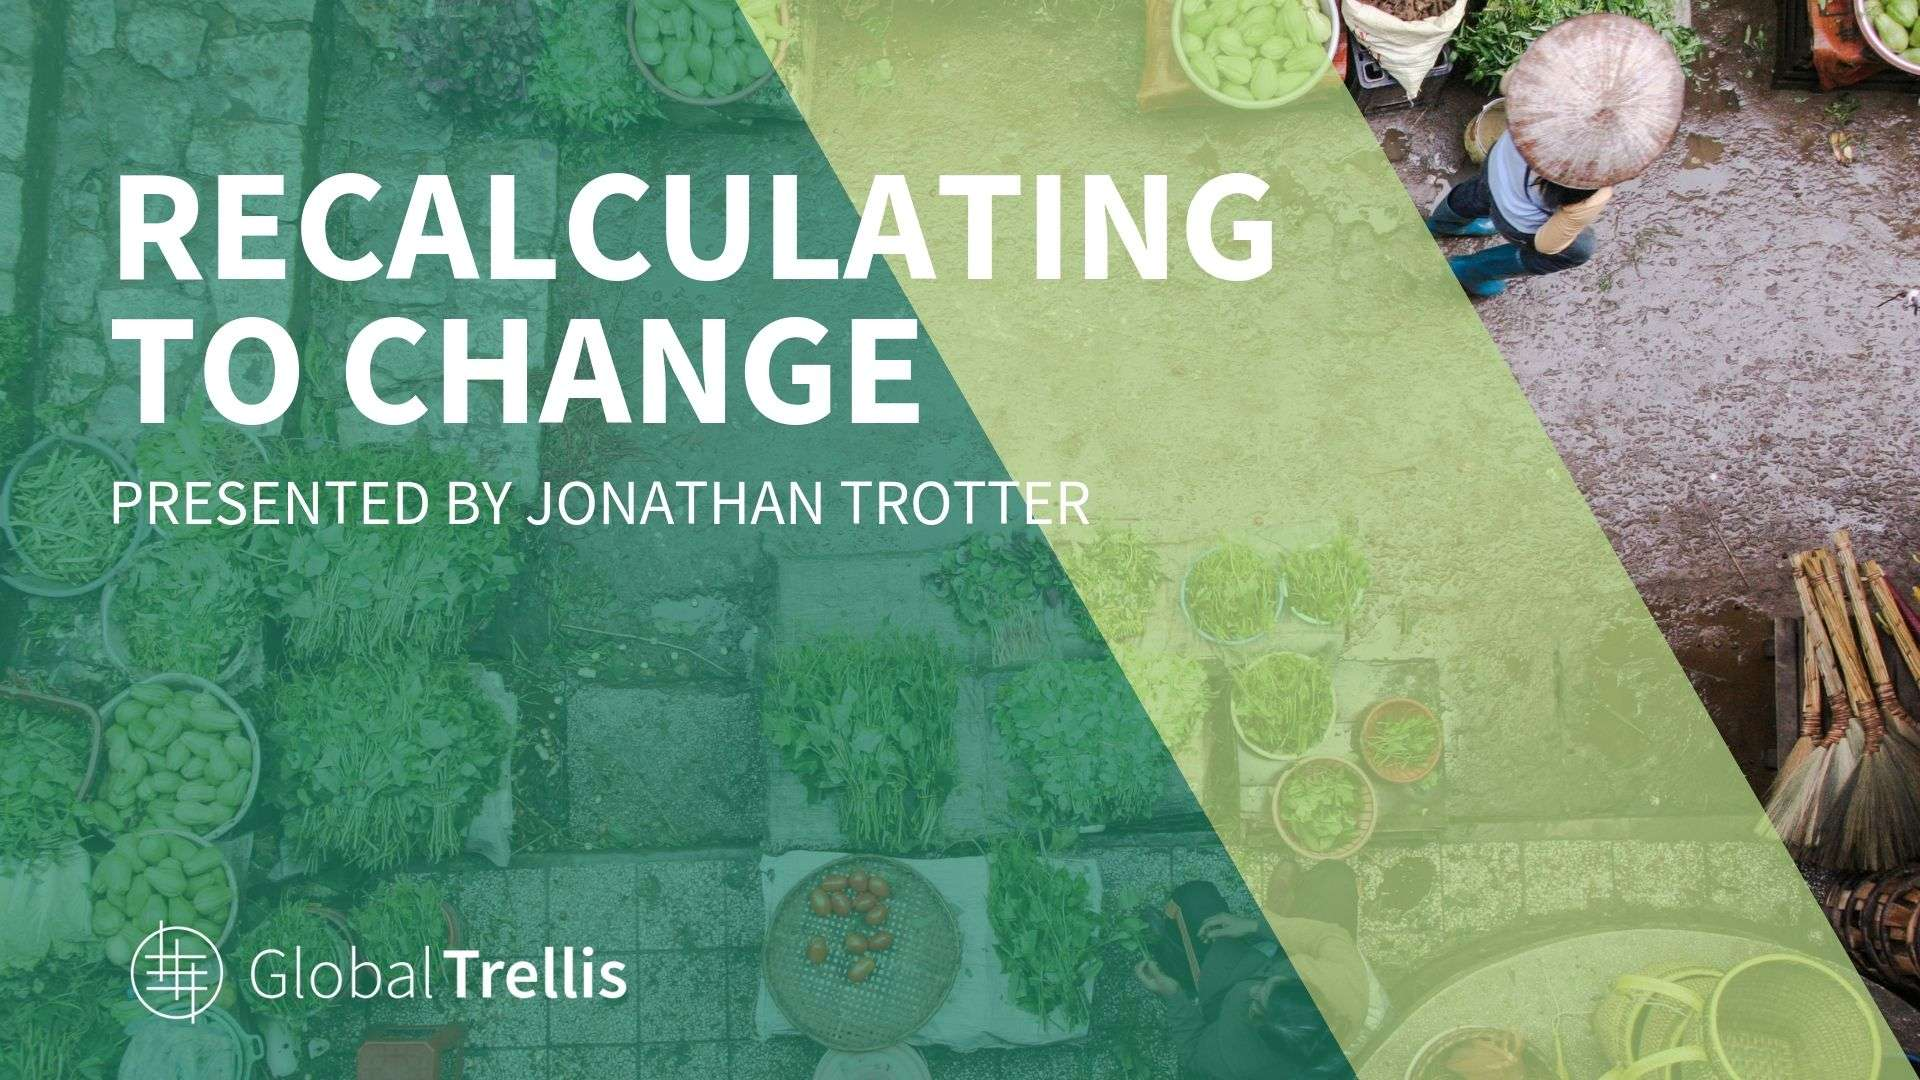 Recalculating to Change